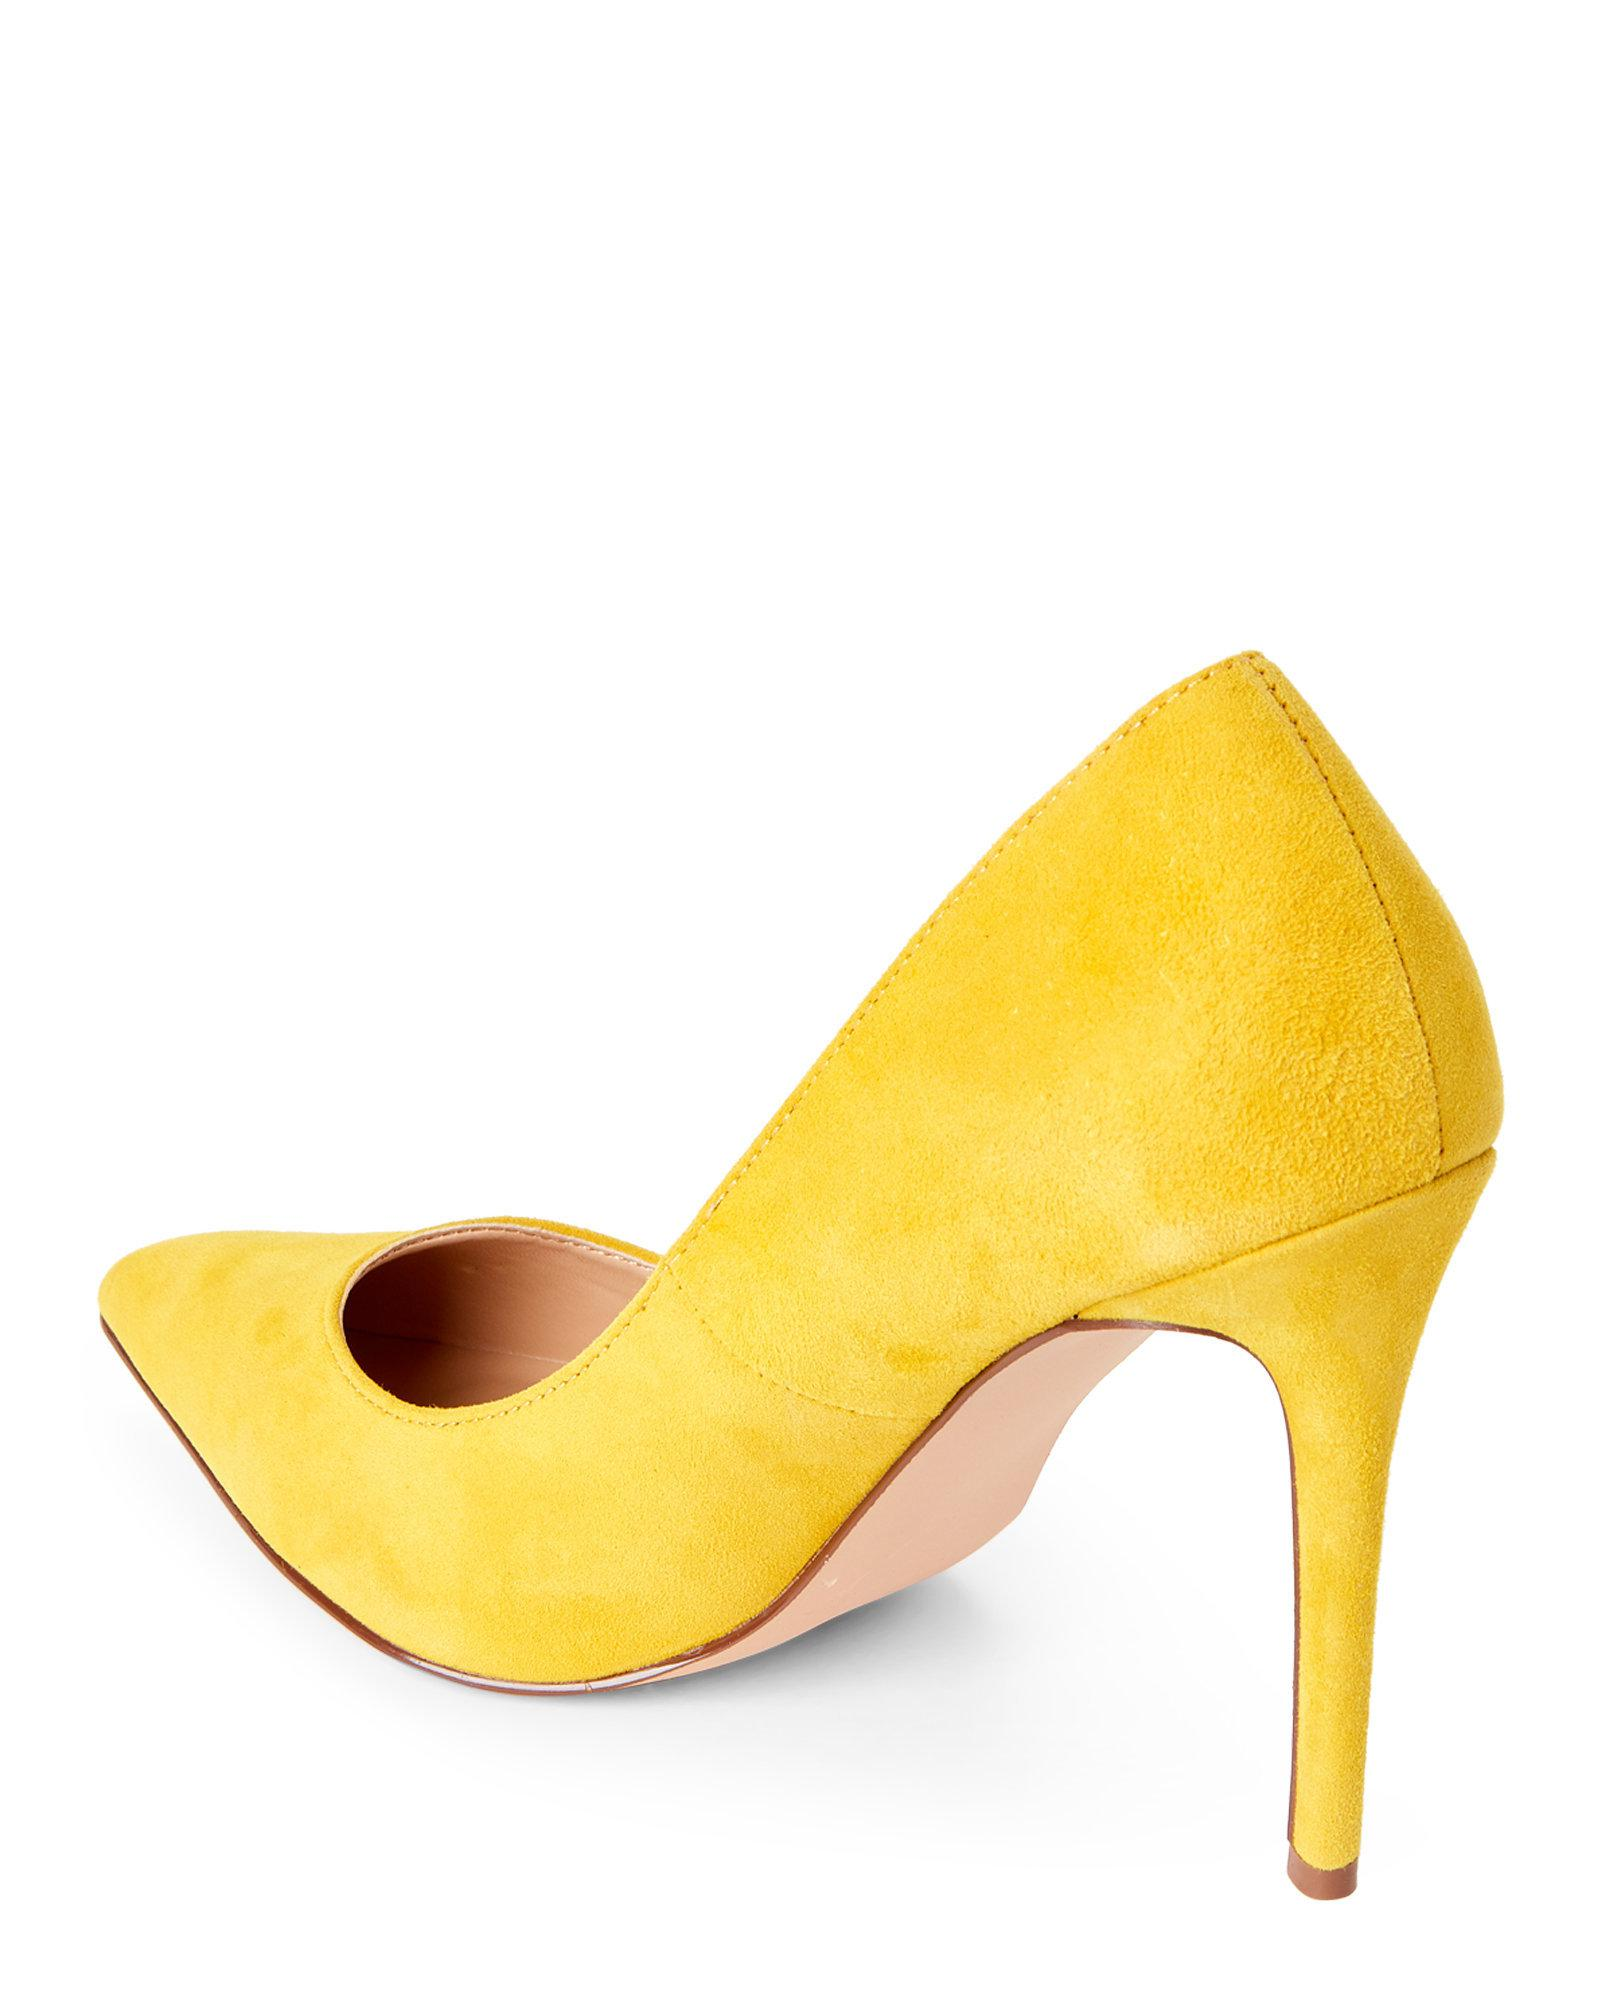 fb31707669a Lyst - Steve Madden Yellow Poet Suede Pointed Toe Pumps in Yellow